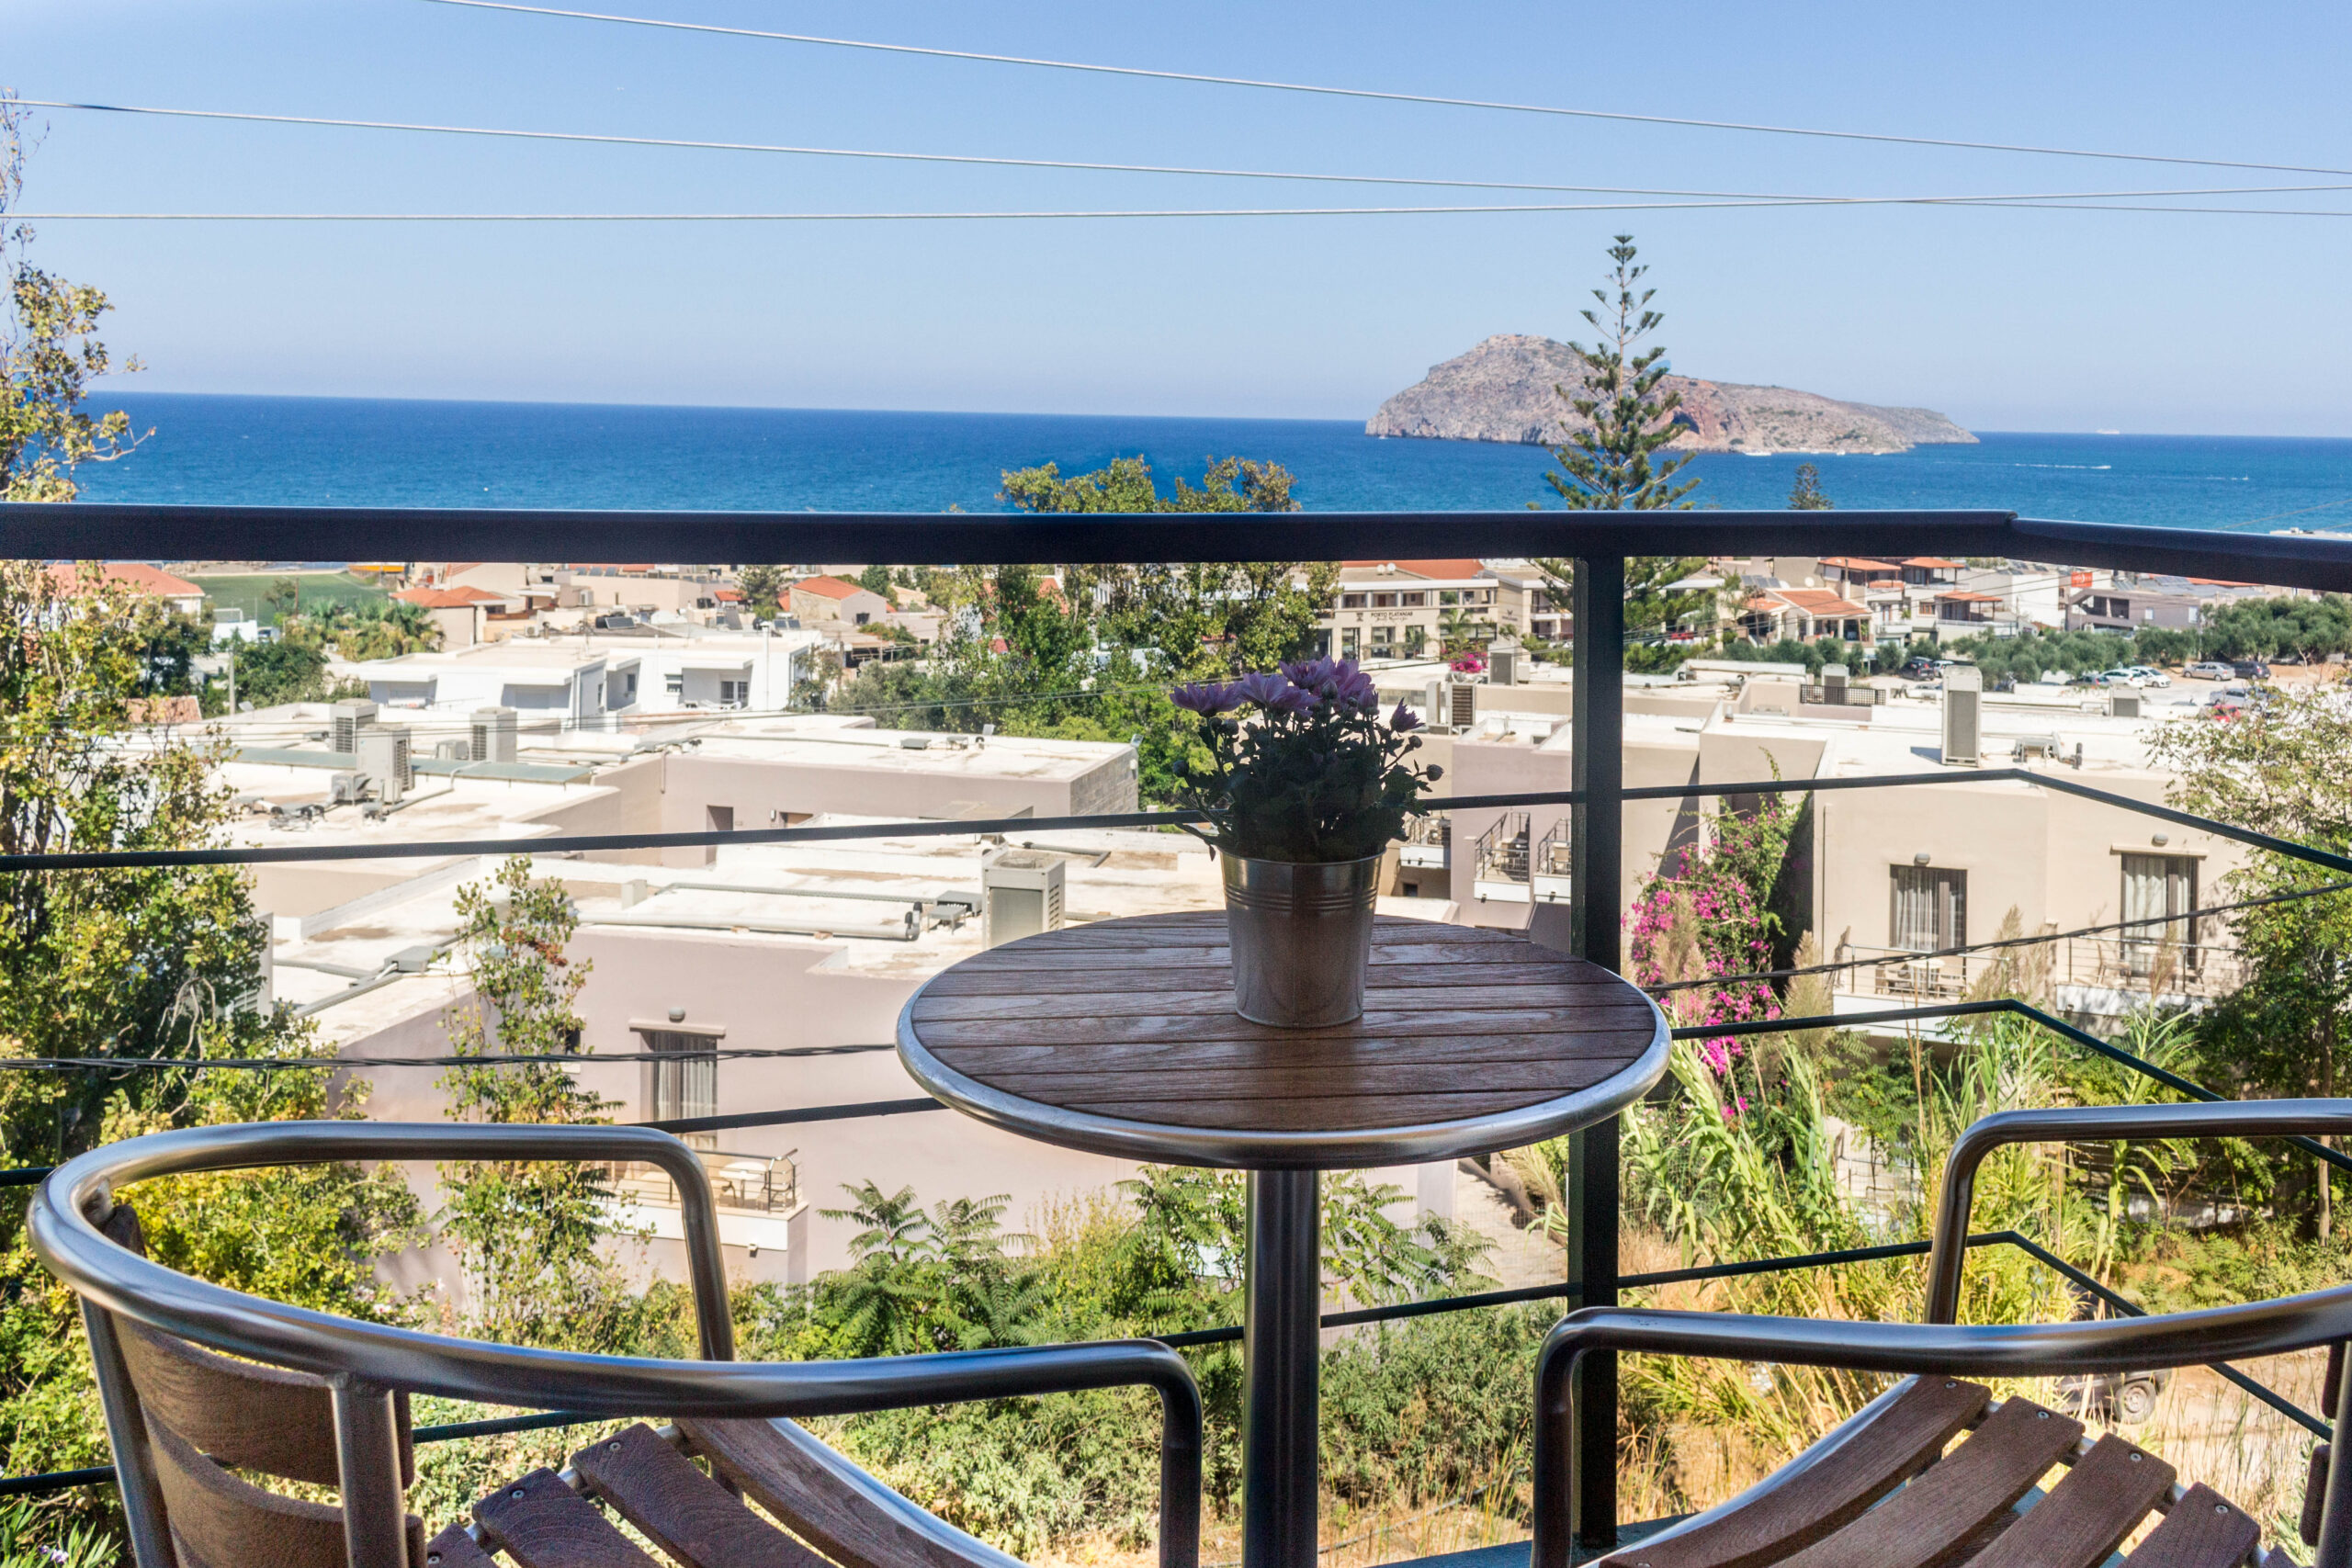 Pelagos Holidays Apartments - Balcony View